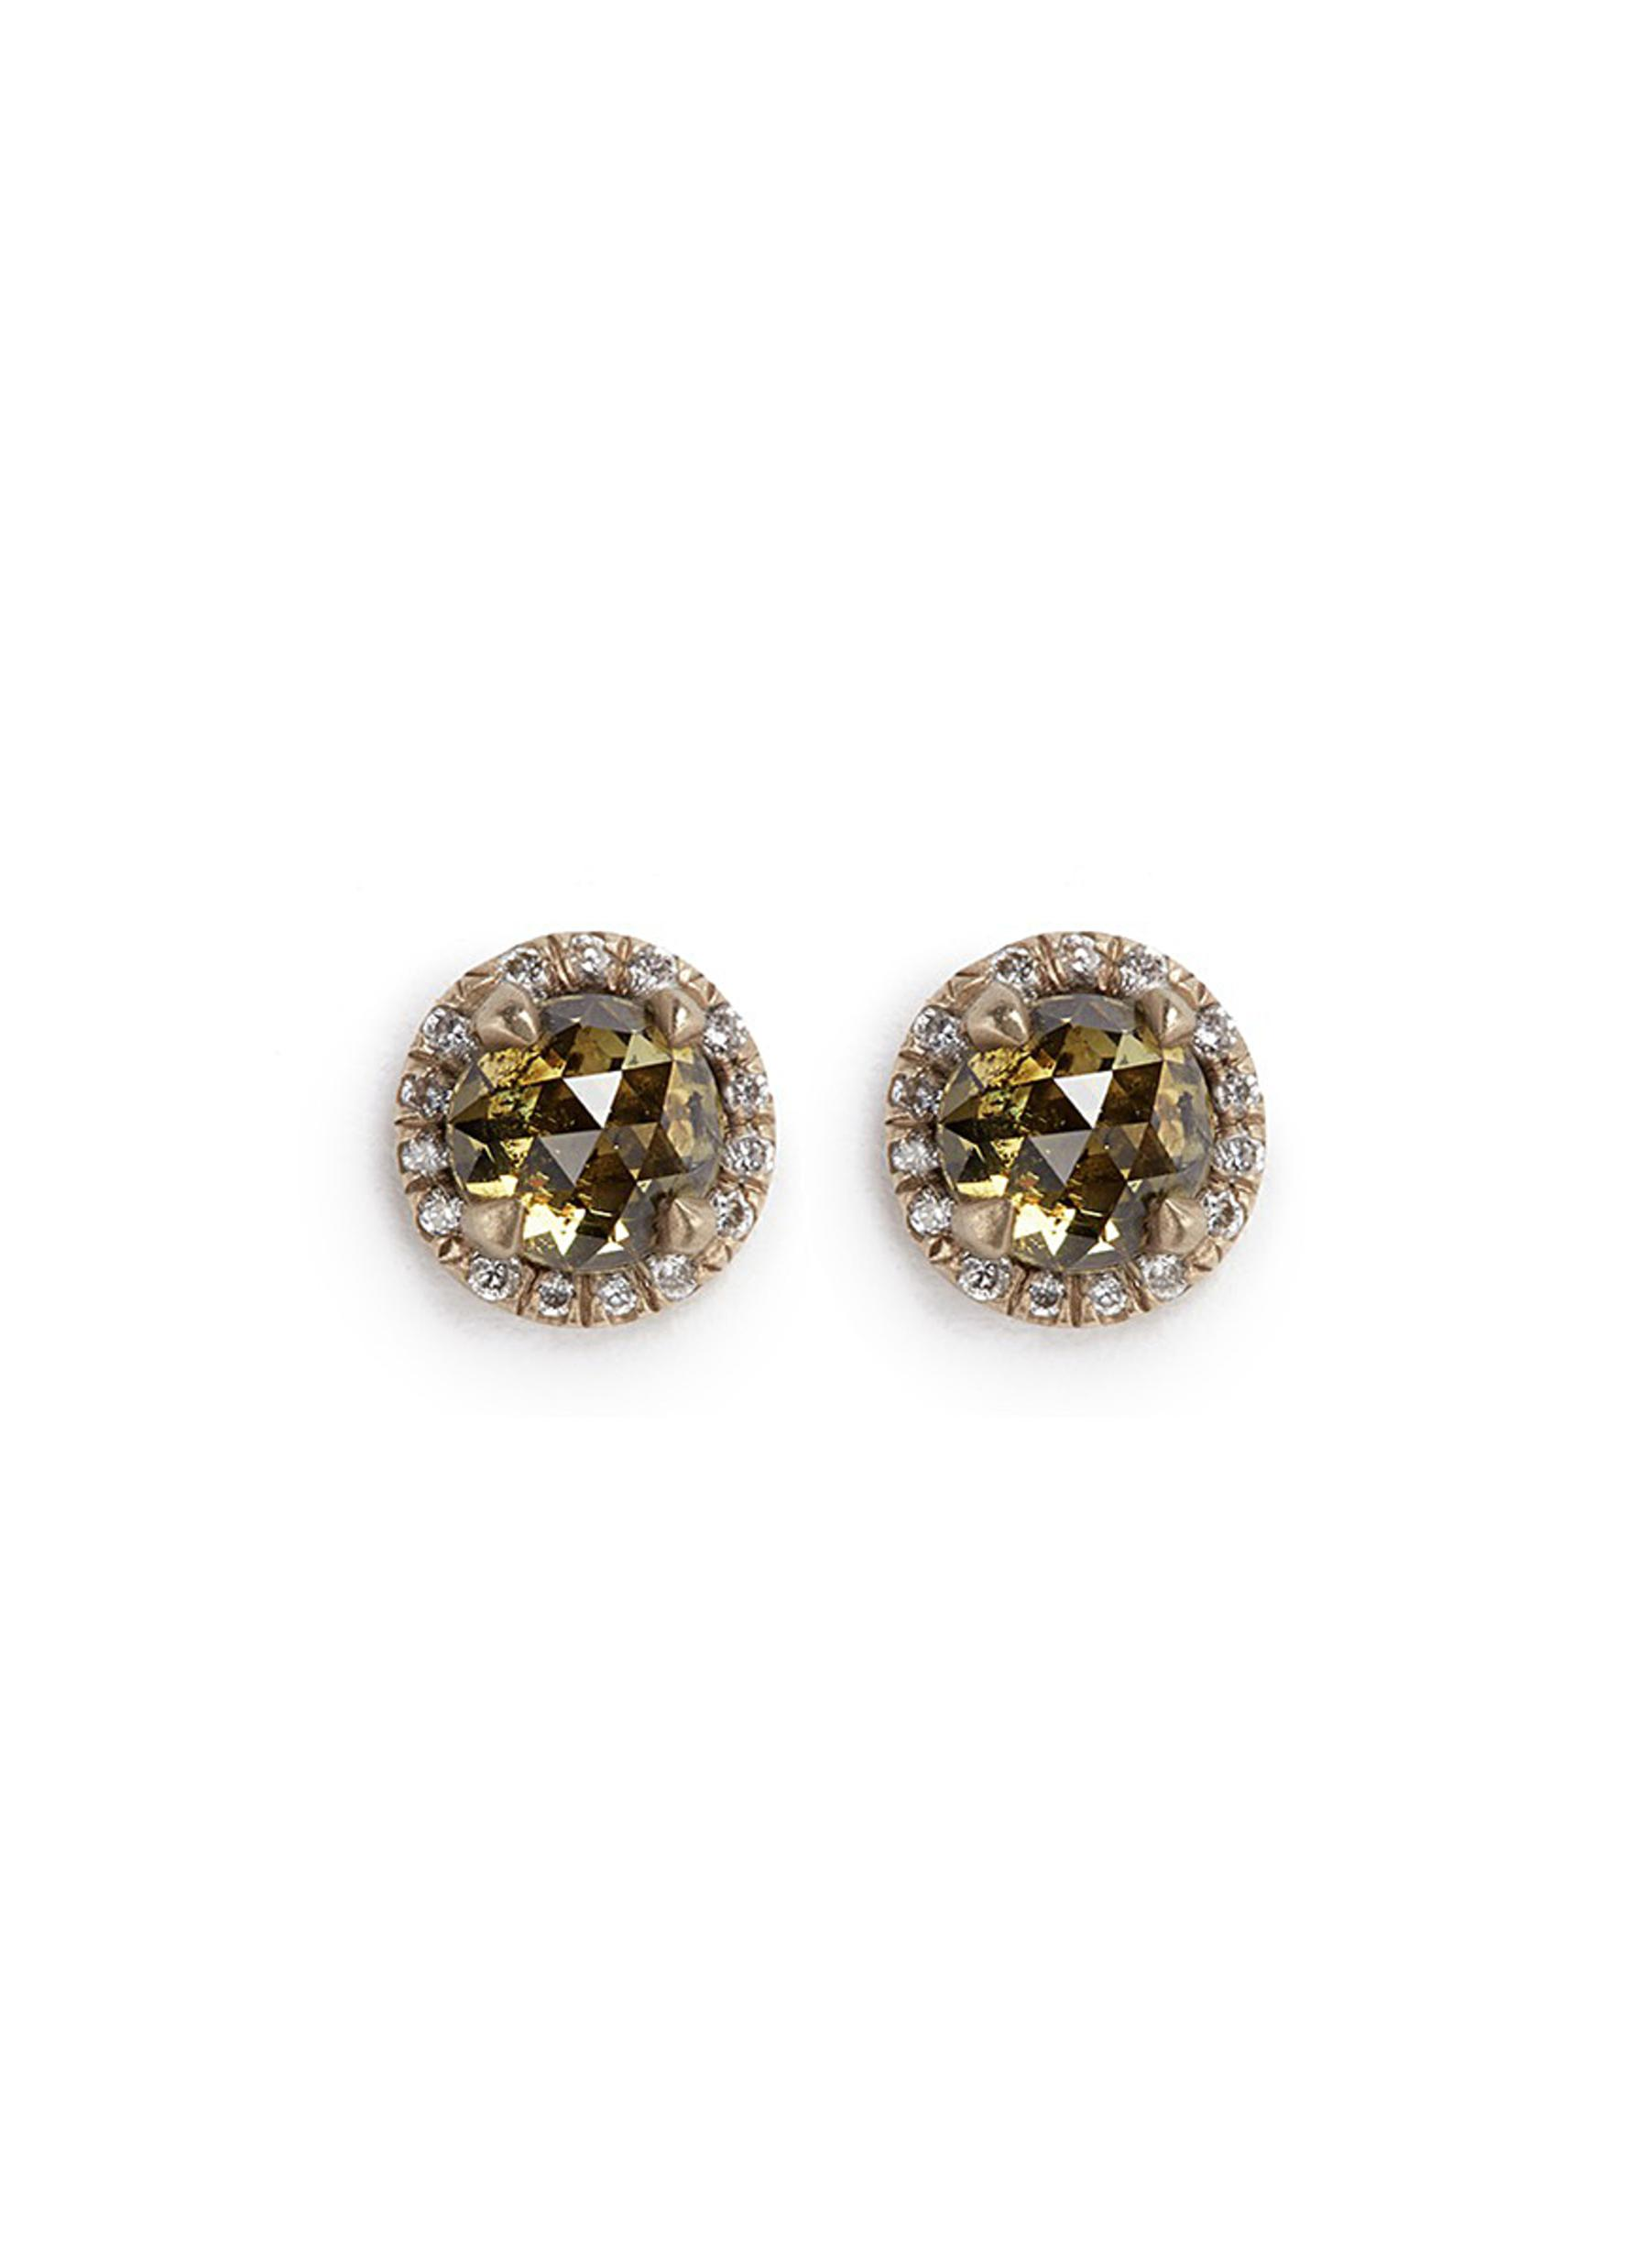 MONIQUE PÉAN 'Atelier' Halo Diamond 18K Recycled Gold Stud Earrings